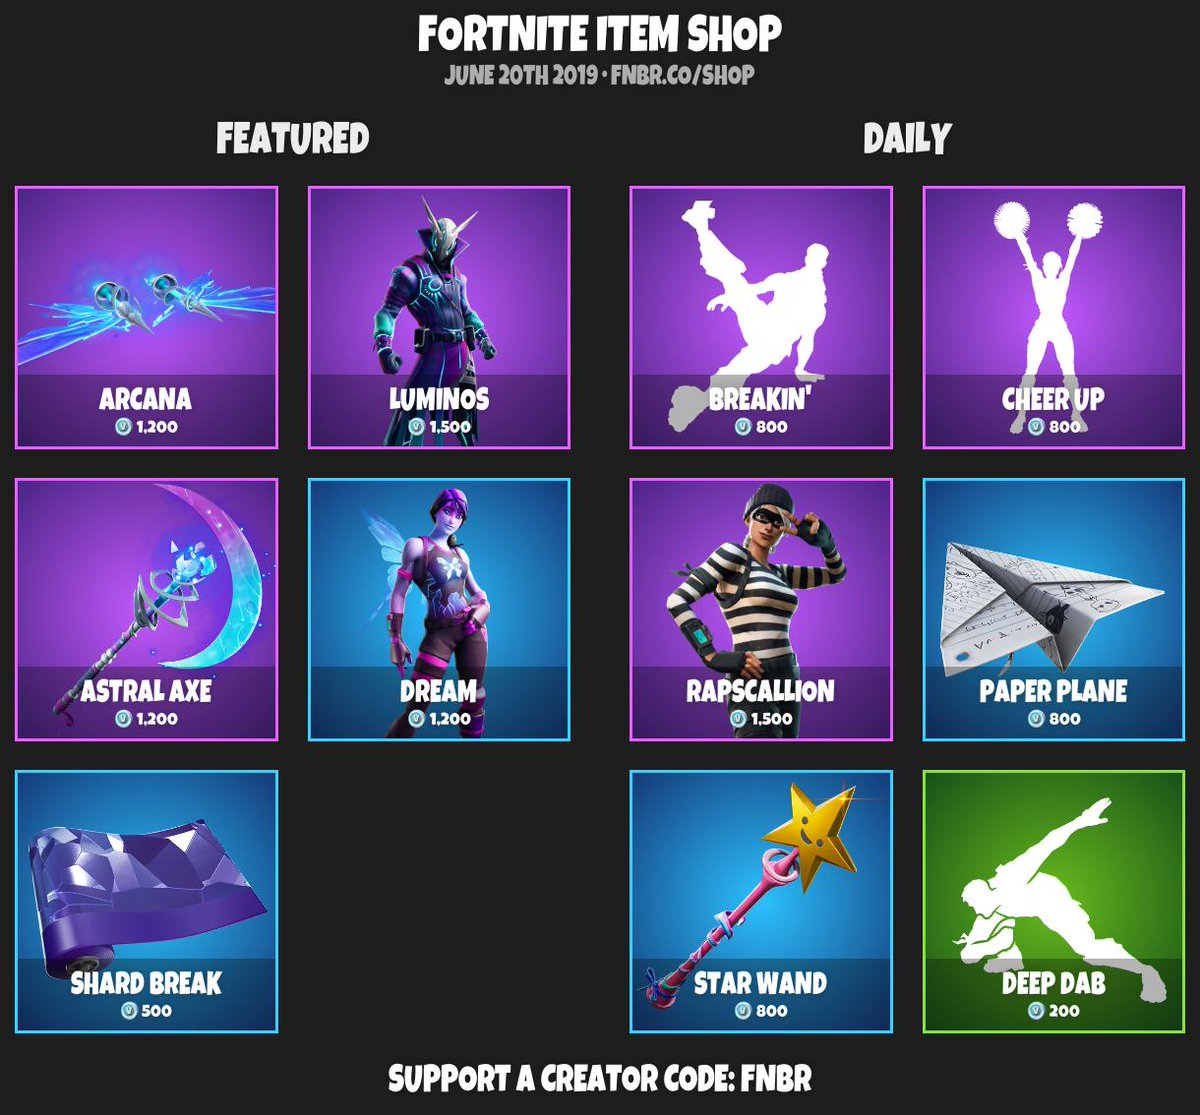 #Fortnite Item Shop for June 20th 2019 |  https:// fnbr.co/shop      Use creator code 'fnbr' if you'd like to support us! <br>http://pic.twitter.com/72MSgcq7xW